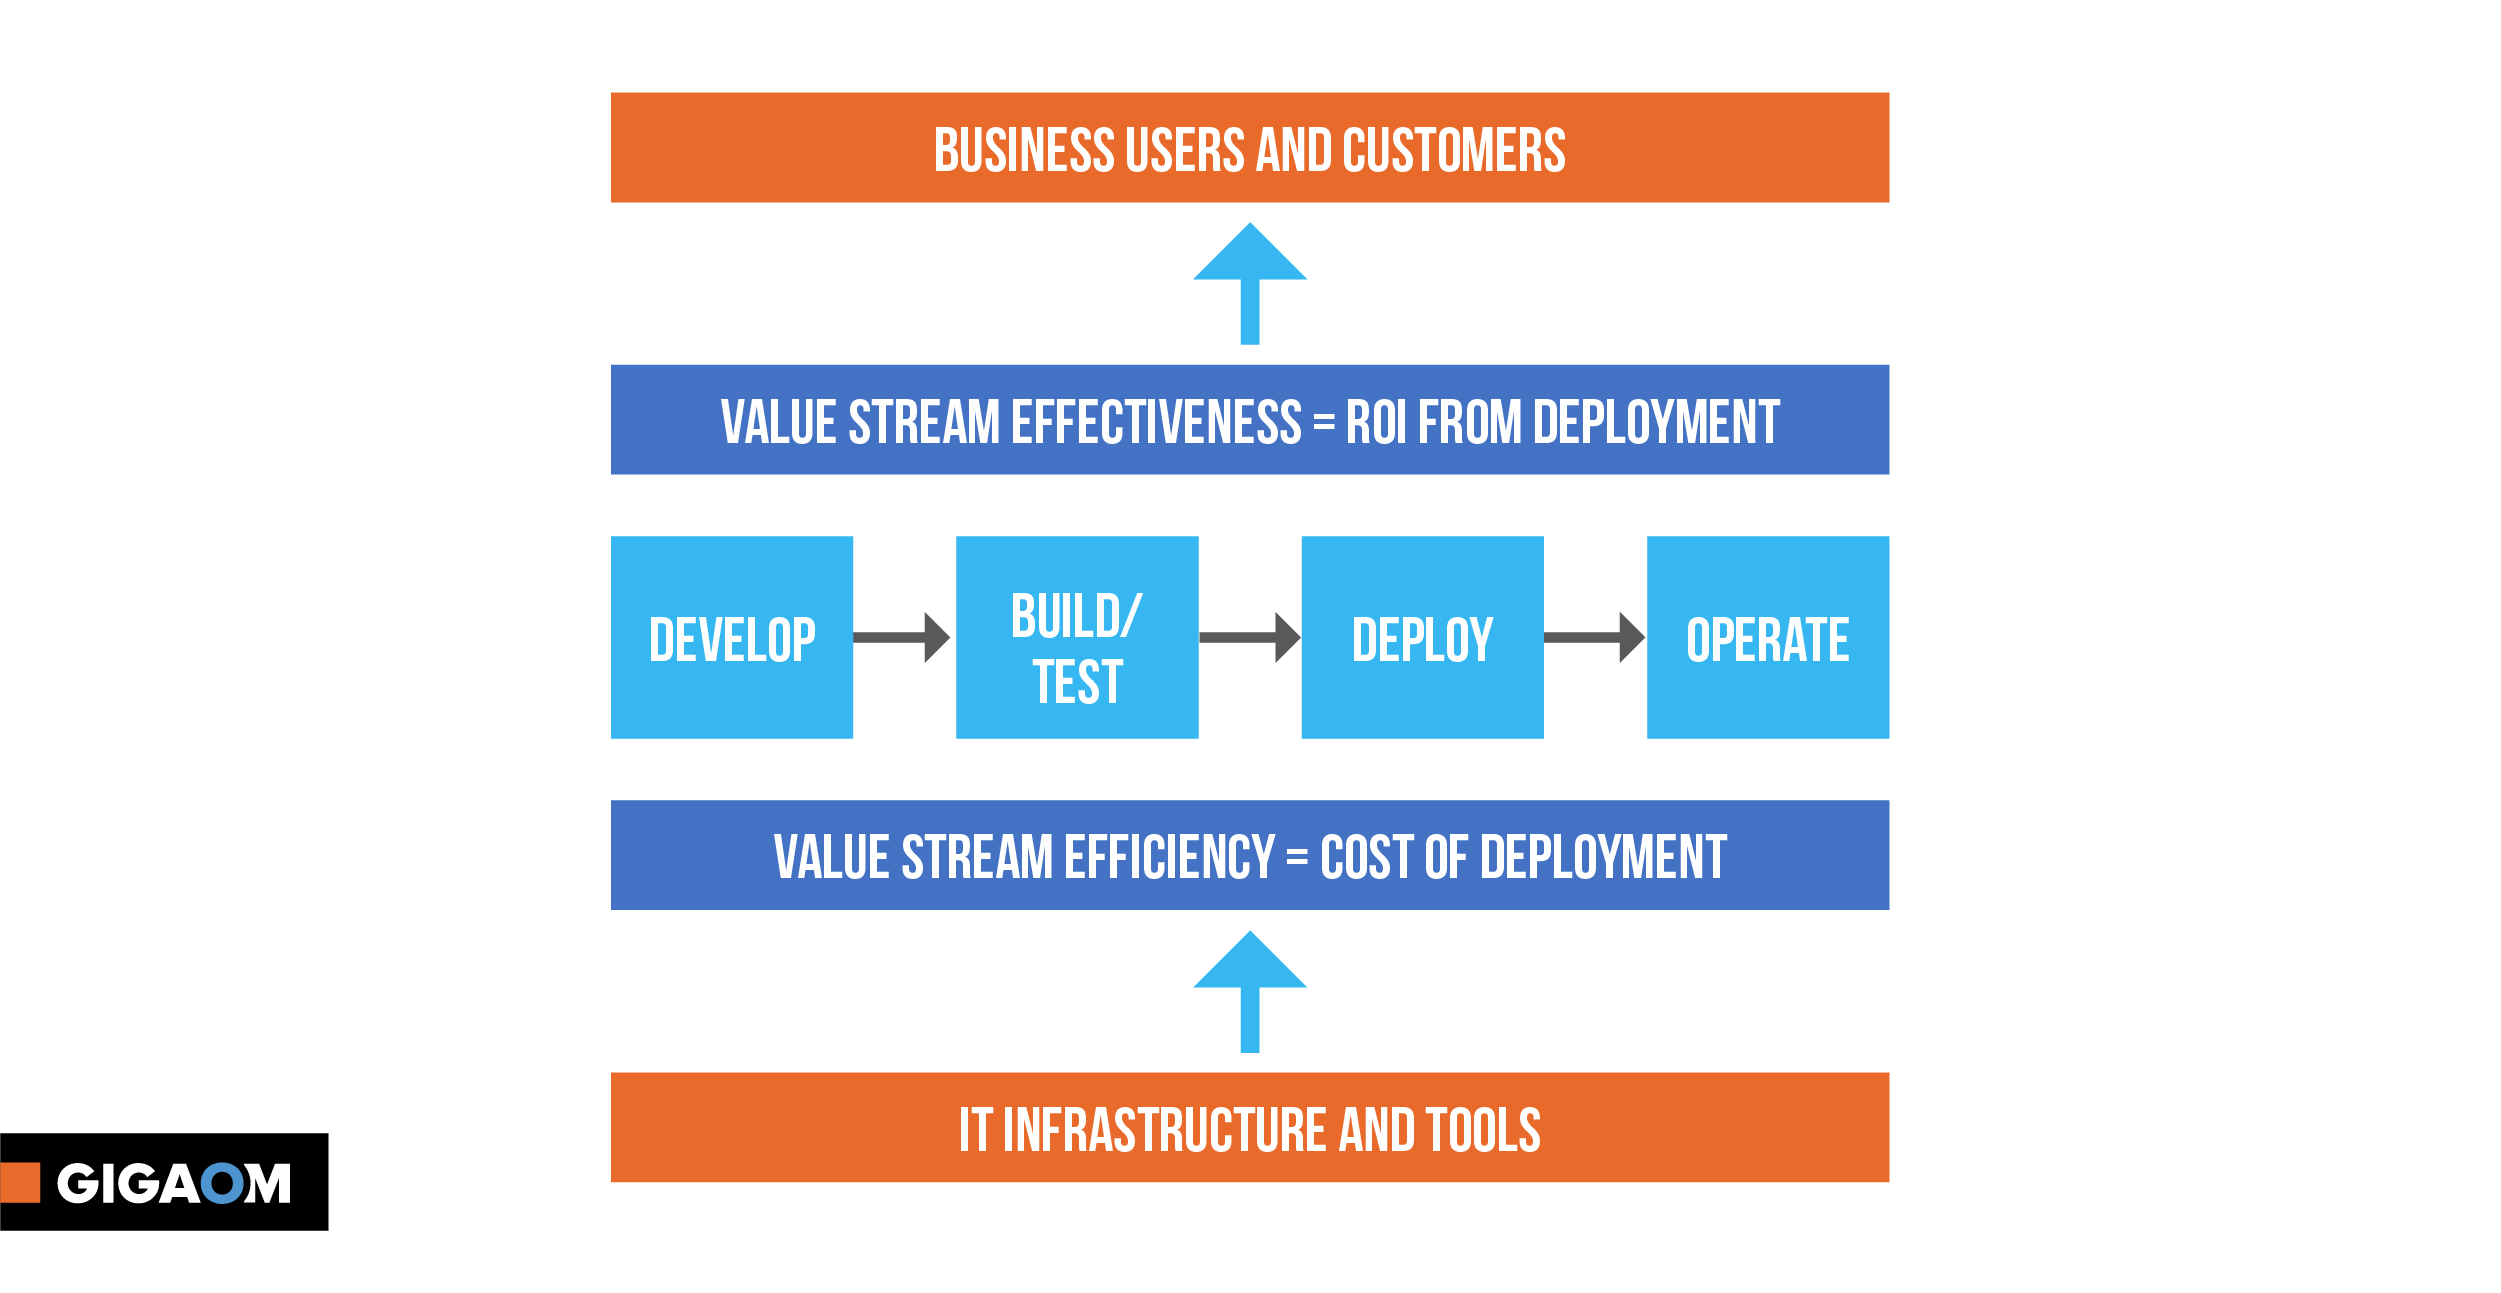 Why Should You Bother with Value Stream Management?